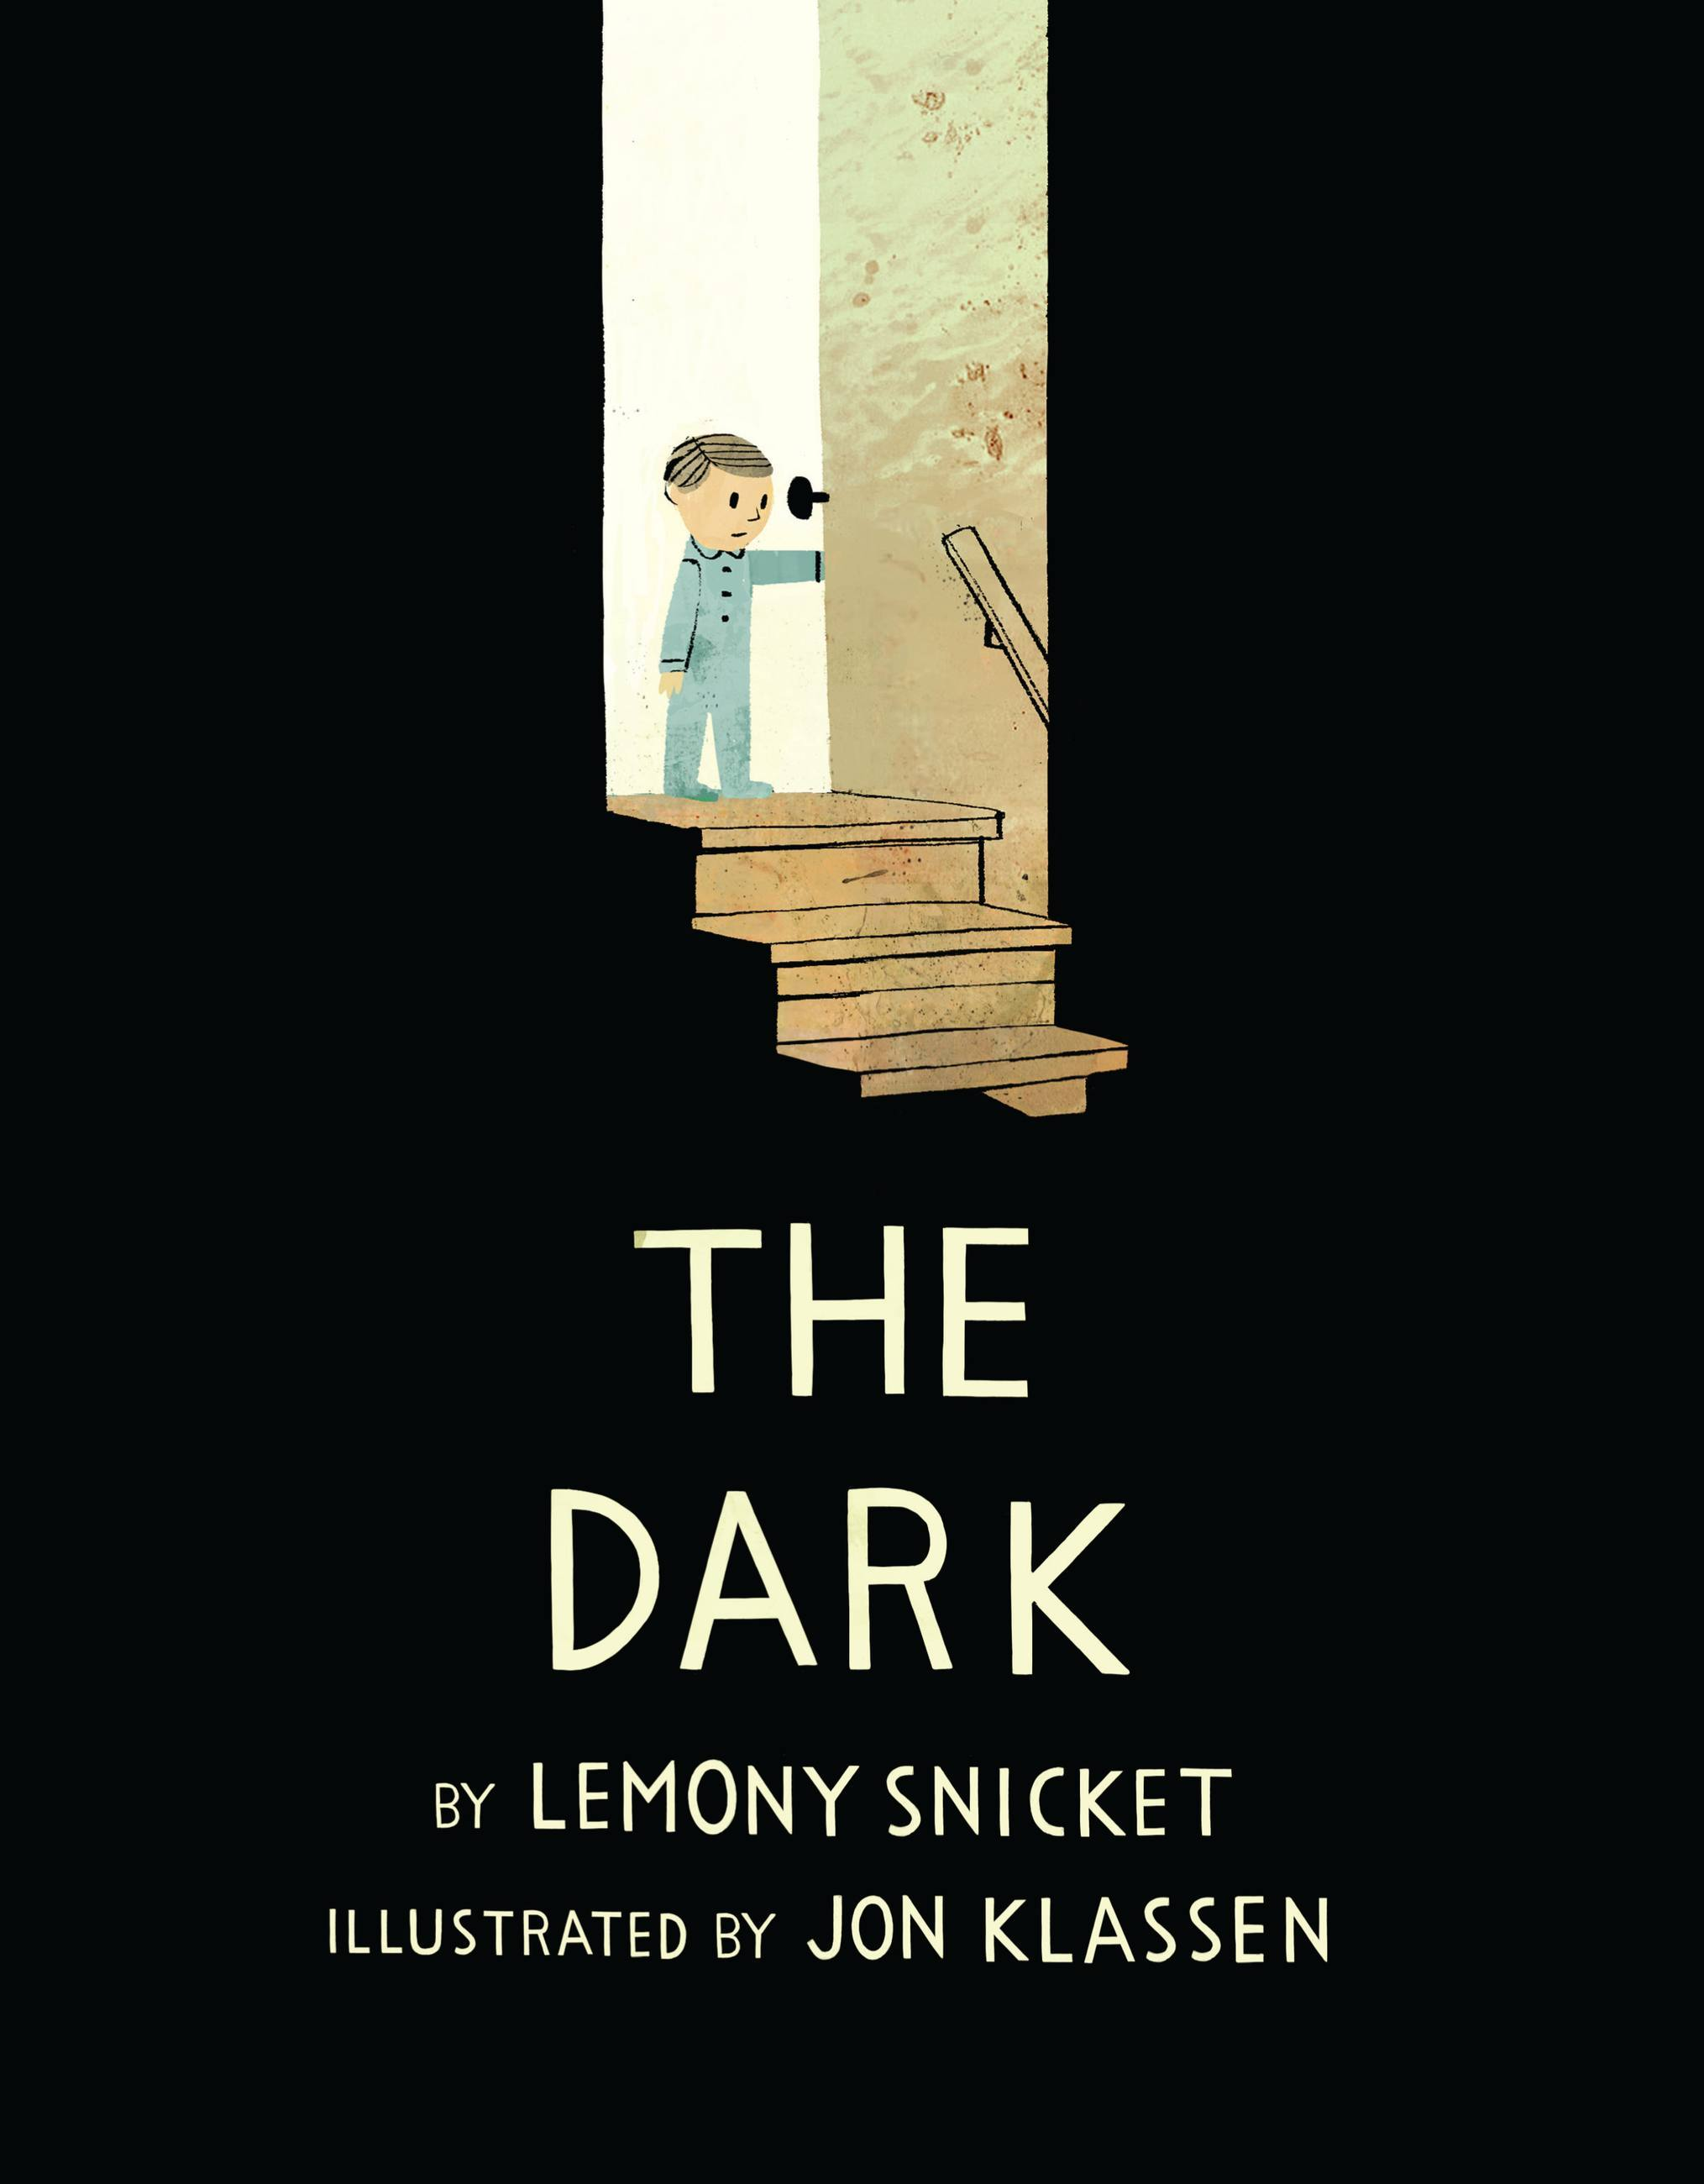 Cover Art for The Dark, ISBN: 9780316187480